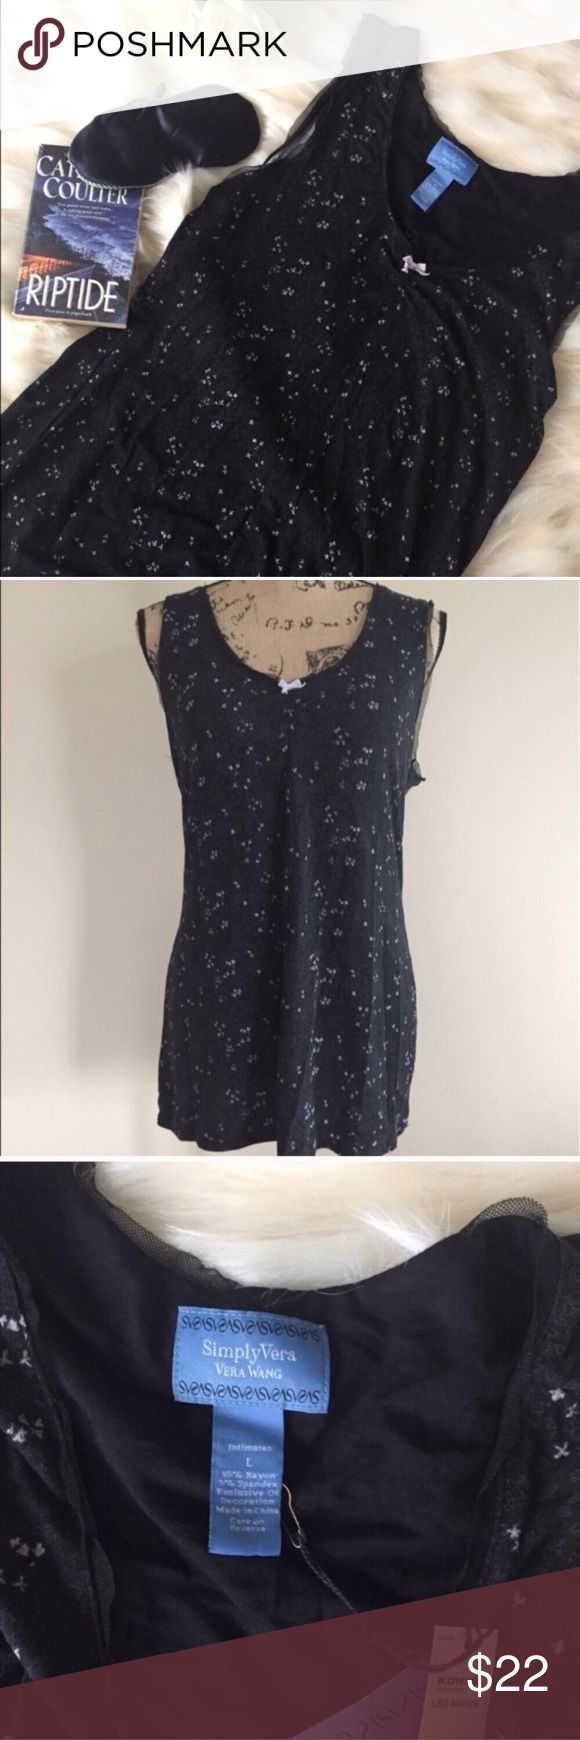 "NWT Simply Vera sleep tank NWT black/lavender floral print sleep tank from Simply Vera Vera Wang. Tiny lavender bow accent and lacy mesh trim. Size L. Bust measures 19"", length 29"". ⭐️ Simply Vera Vera Wang Intimates & Sleepwear"